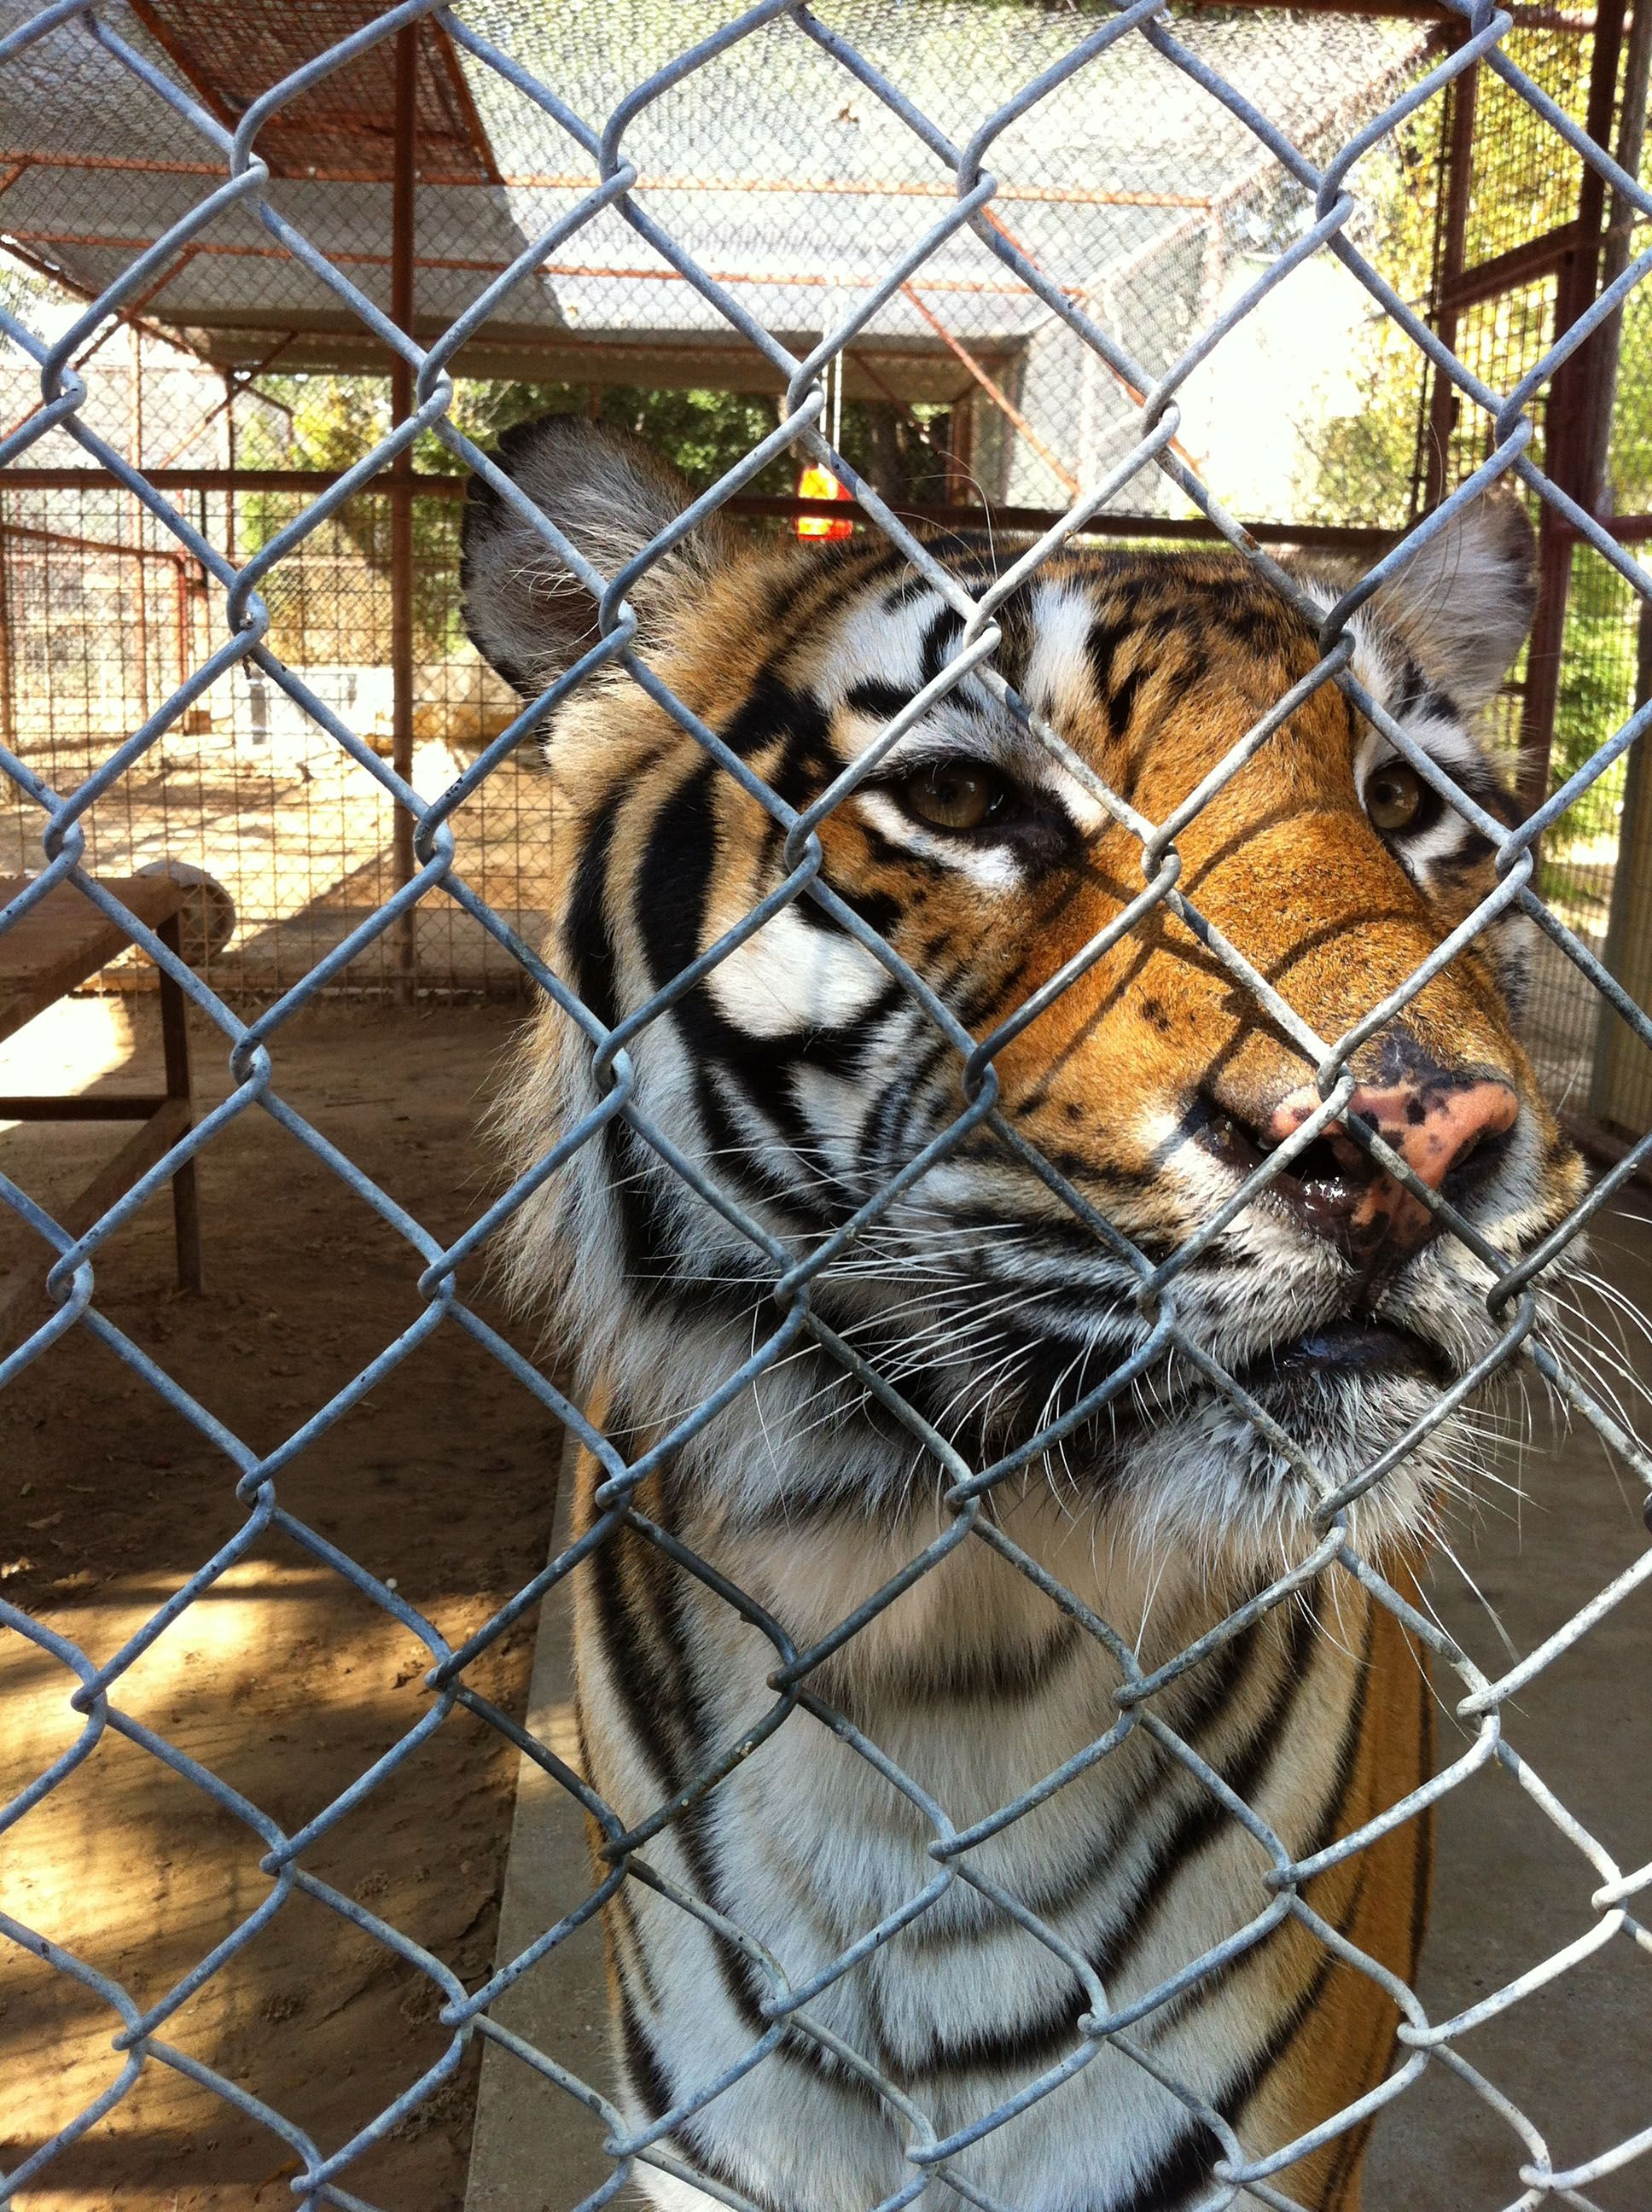 NTTA 's Judy G. snapped a picture of Elijah the tiger